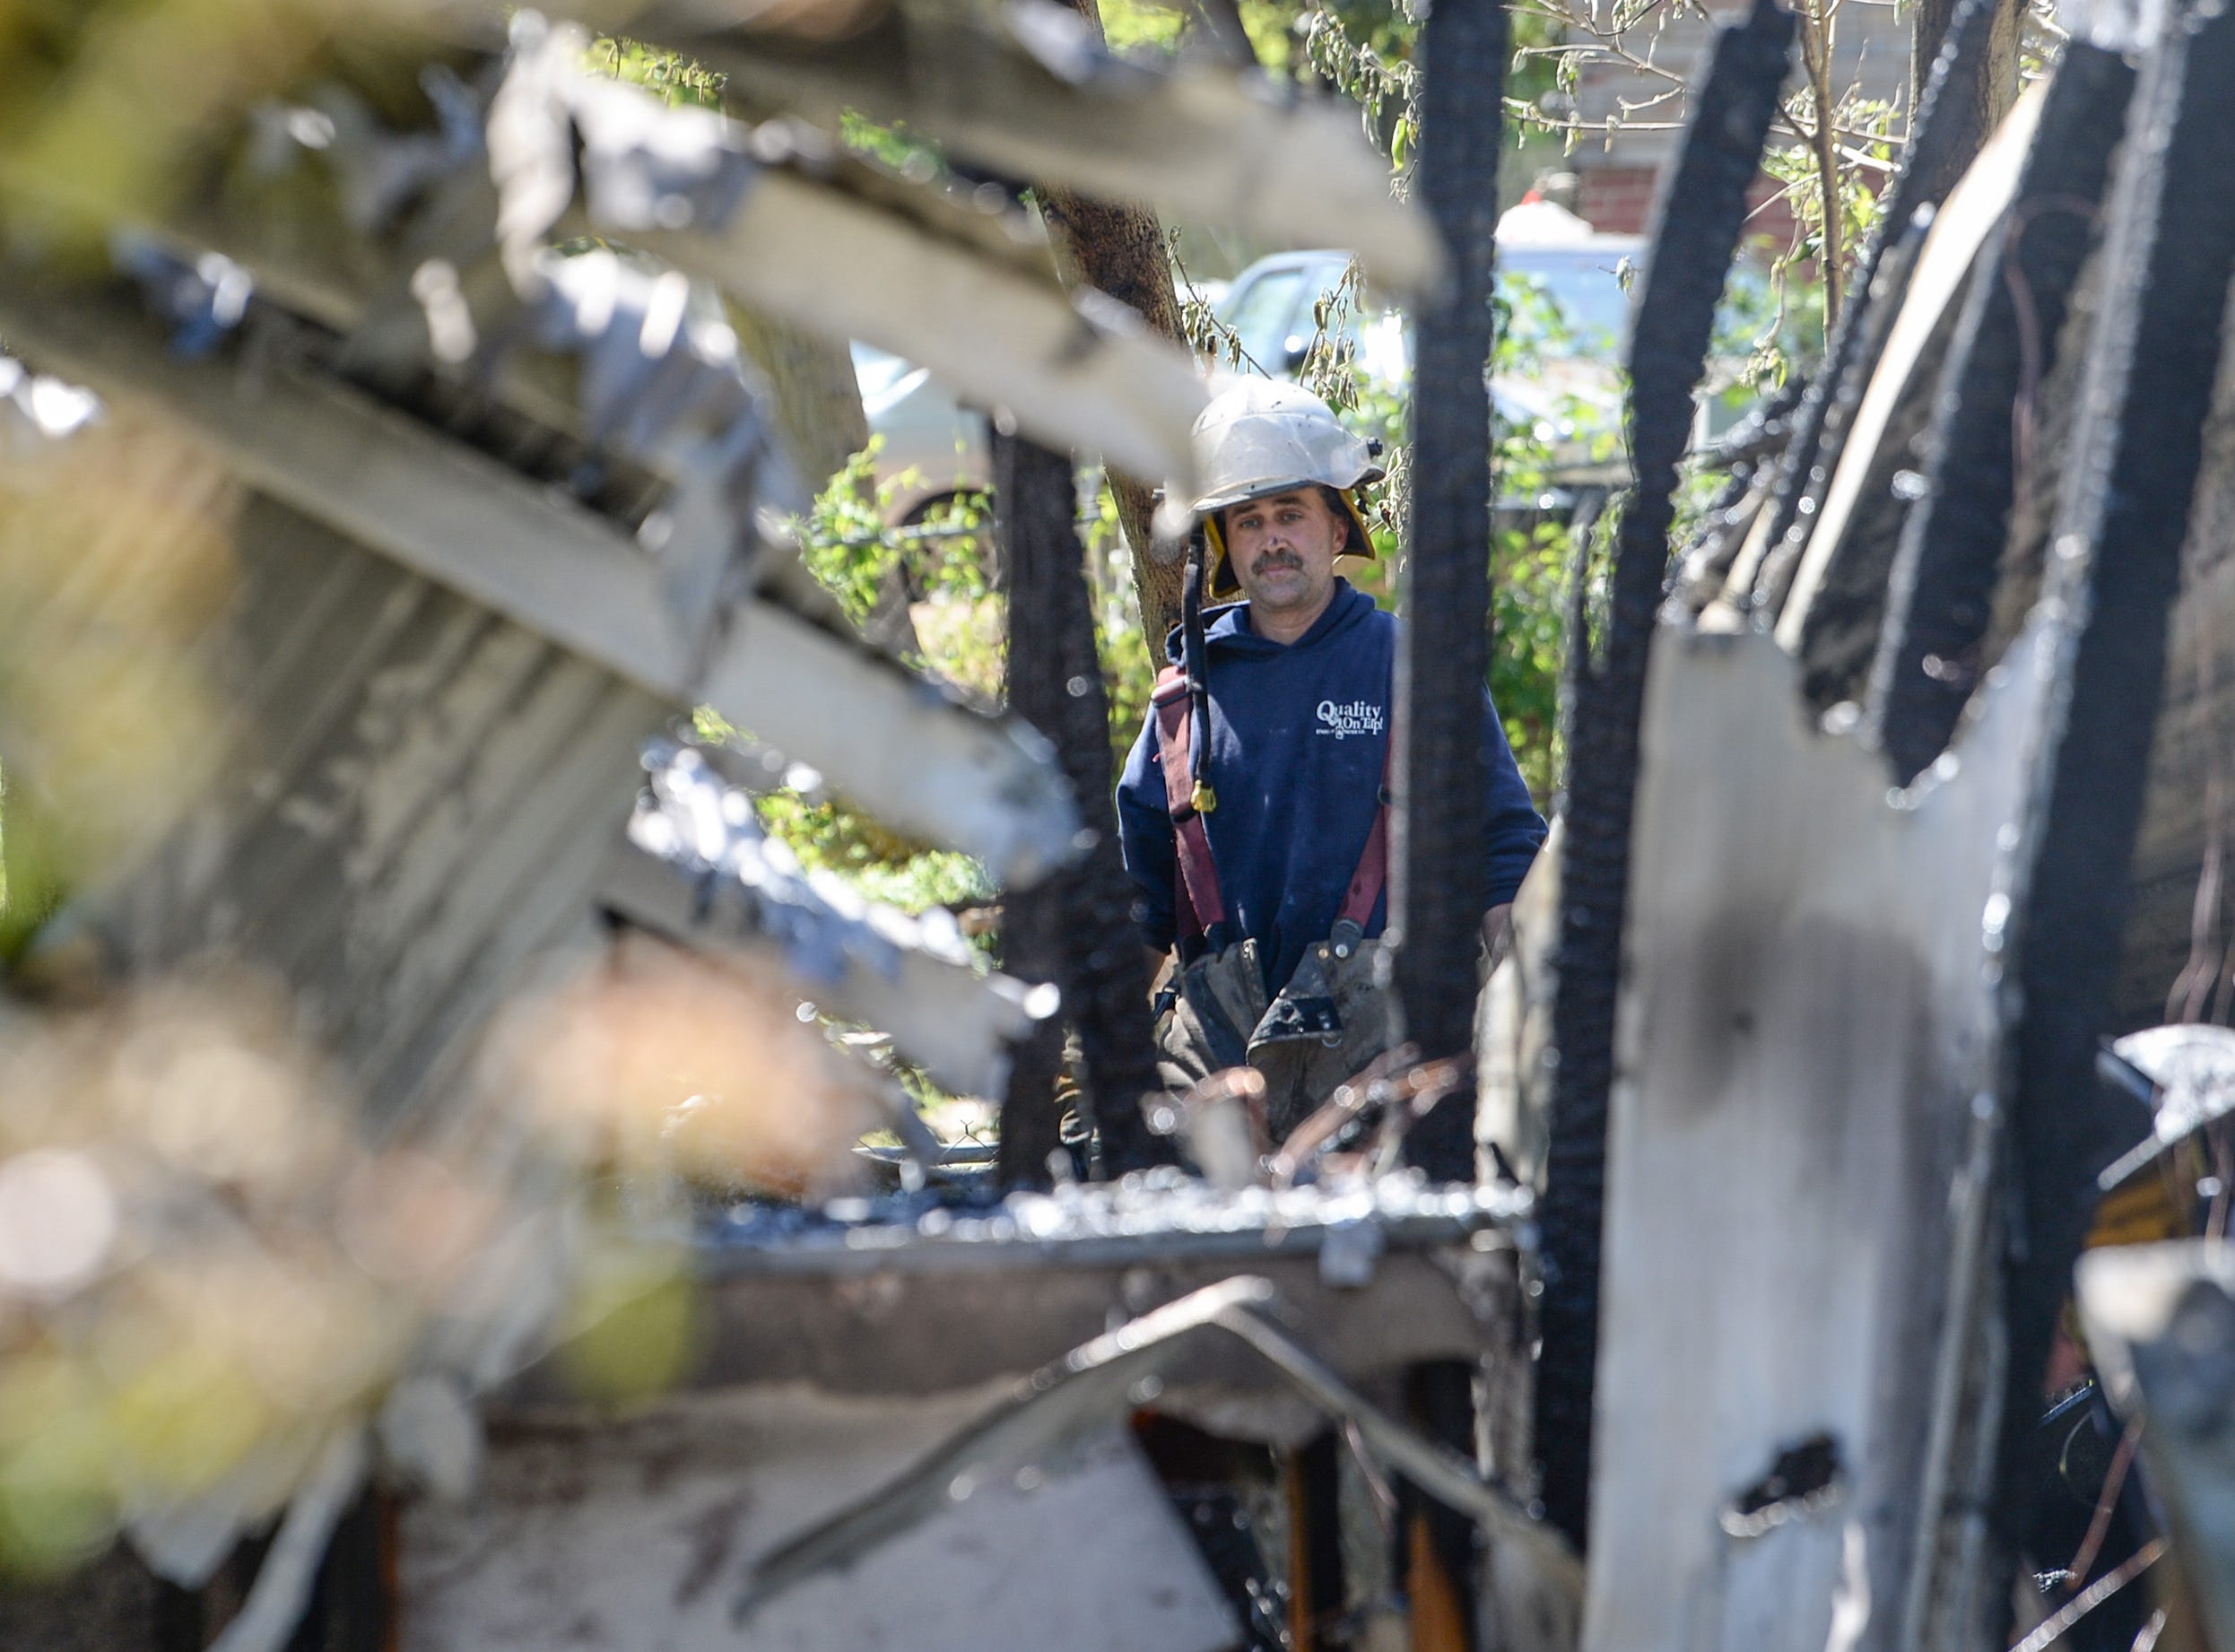 Starr firefighter Garrett Stone looks at the remains of a fire which Centerville and Homeland Park responded to on the corner of Boston and Beta Streets in West Anderson Monday. The clear skies made it possible to see the smoke from the Northeast side of Anderson County. Wendell Hunter, Anderson County fire investigator is investigating the cause as the firemen were cooling down hot spots.